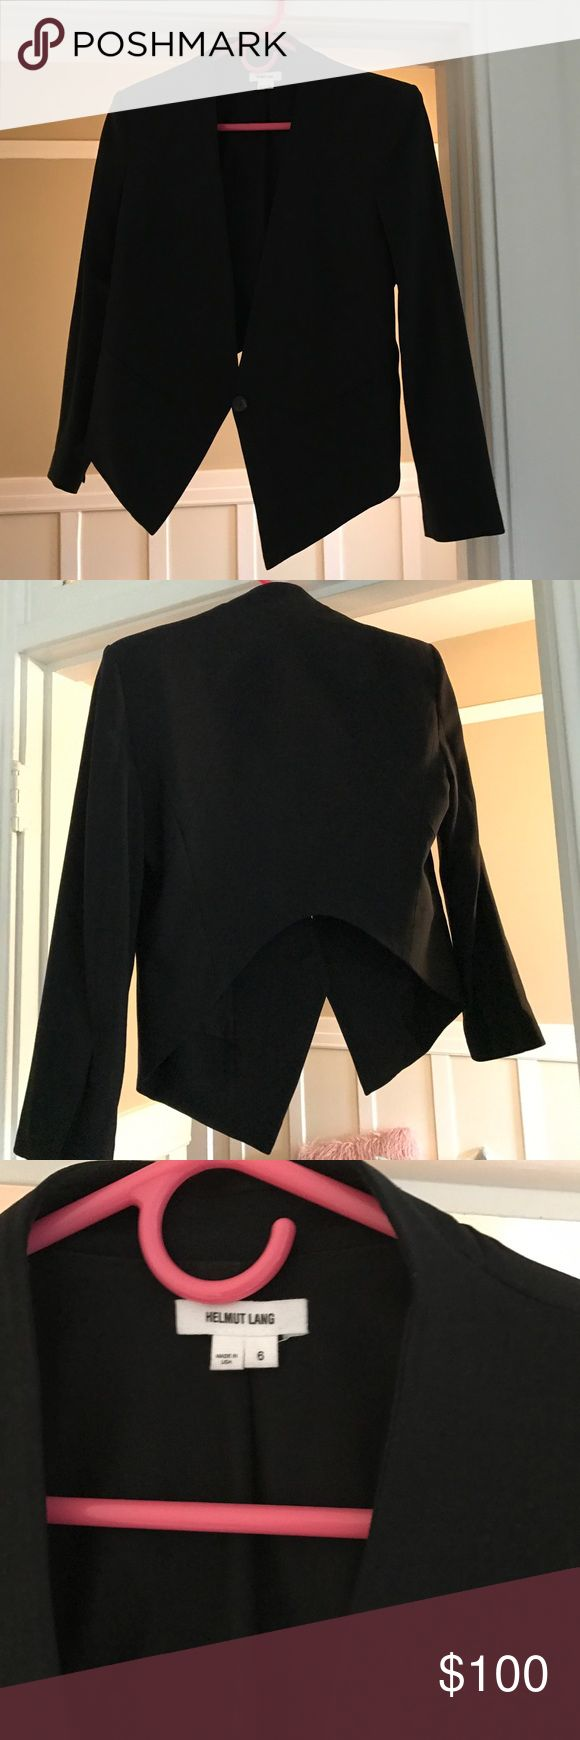 Helmut Lang Blazer Black like new blazer. Tuxedo style in front and shorter in back. Looks great with long blouses, just too big for me. Only imperfection are thread loops in back (shown). Helmut Lang Jackets & Coats Blazers